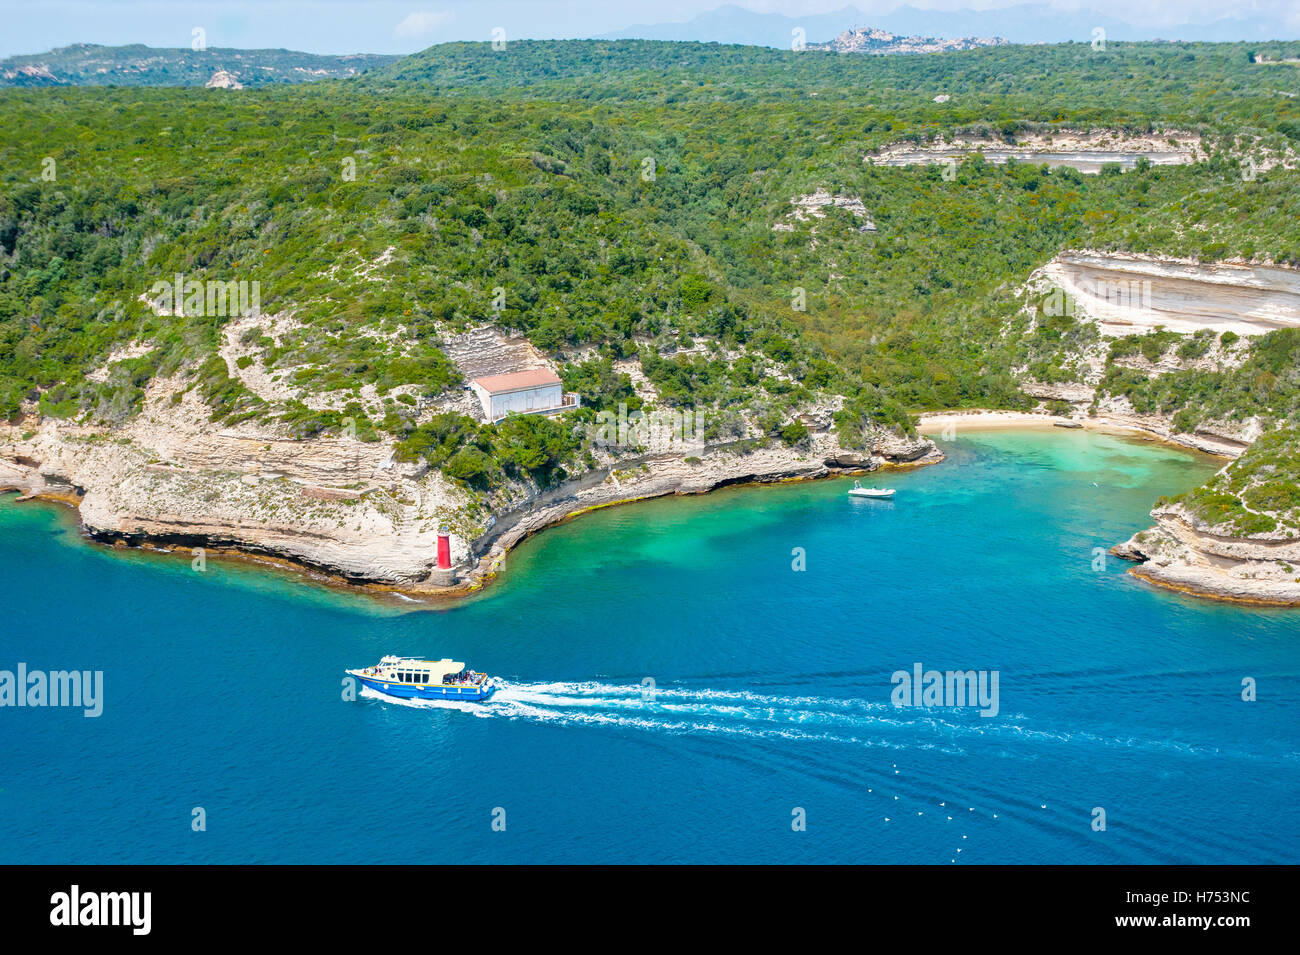 the haven of Bonifacio with tourist boat, Corsica - Stock Image